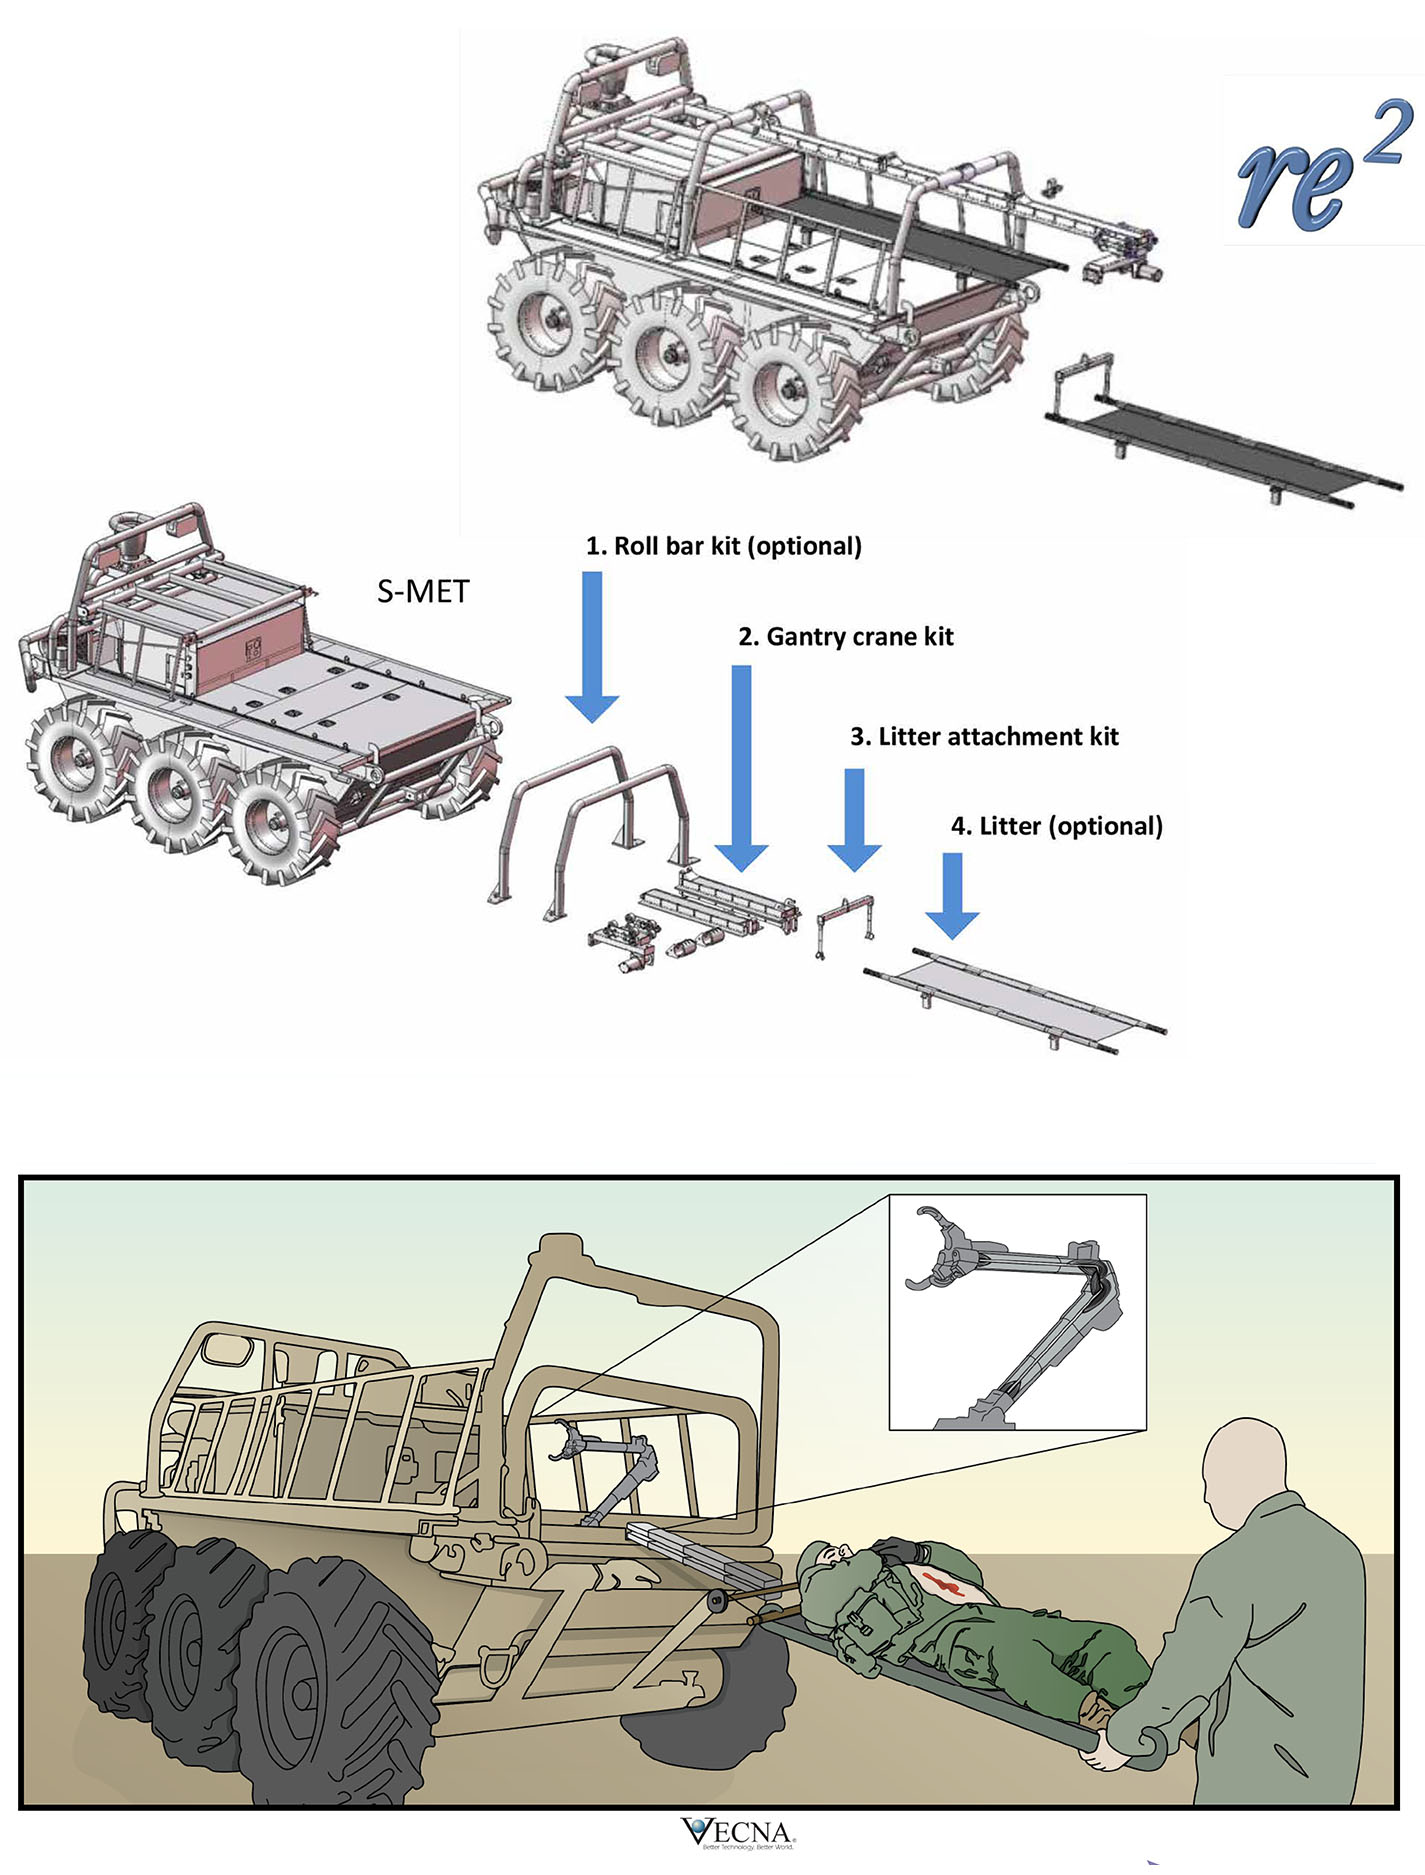 RE2 Robotics of Pittsburgh, Pennsylvania, top, and Vecna Technologies of Cambridge, Massachusetts, are developing electromechanical systems (RE2's on top, Vecna's on bottom) that use robotic technologies to enable a single medic to load a casualty on a litter onto a SMET unmanned ground vehicle as quickly as possible near the point of injury, for eventual transport back to a casualty collection or medical evacuation point.(Graphics by RE2 Robotics, top, and Vecna Technologies, bottom)